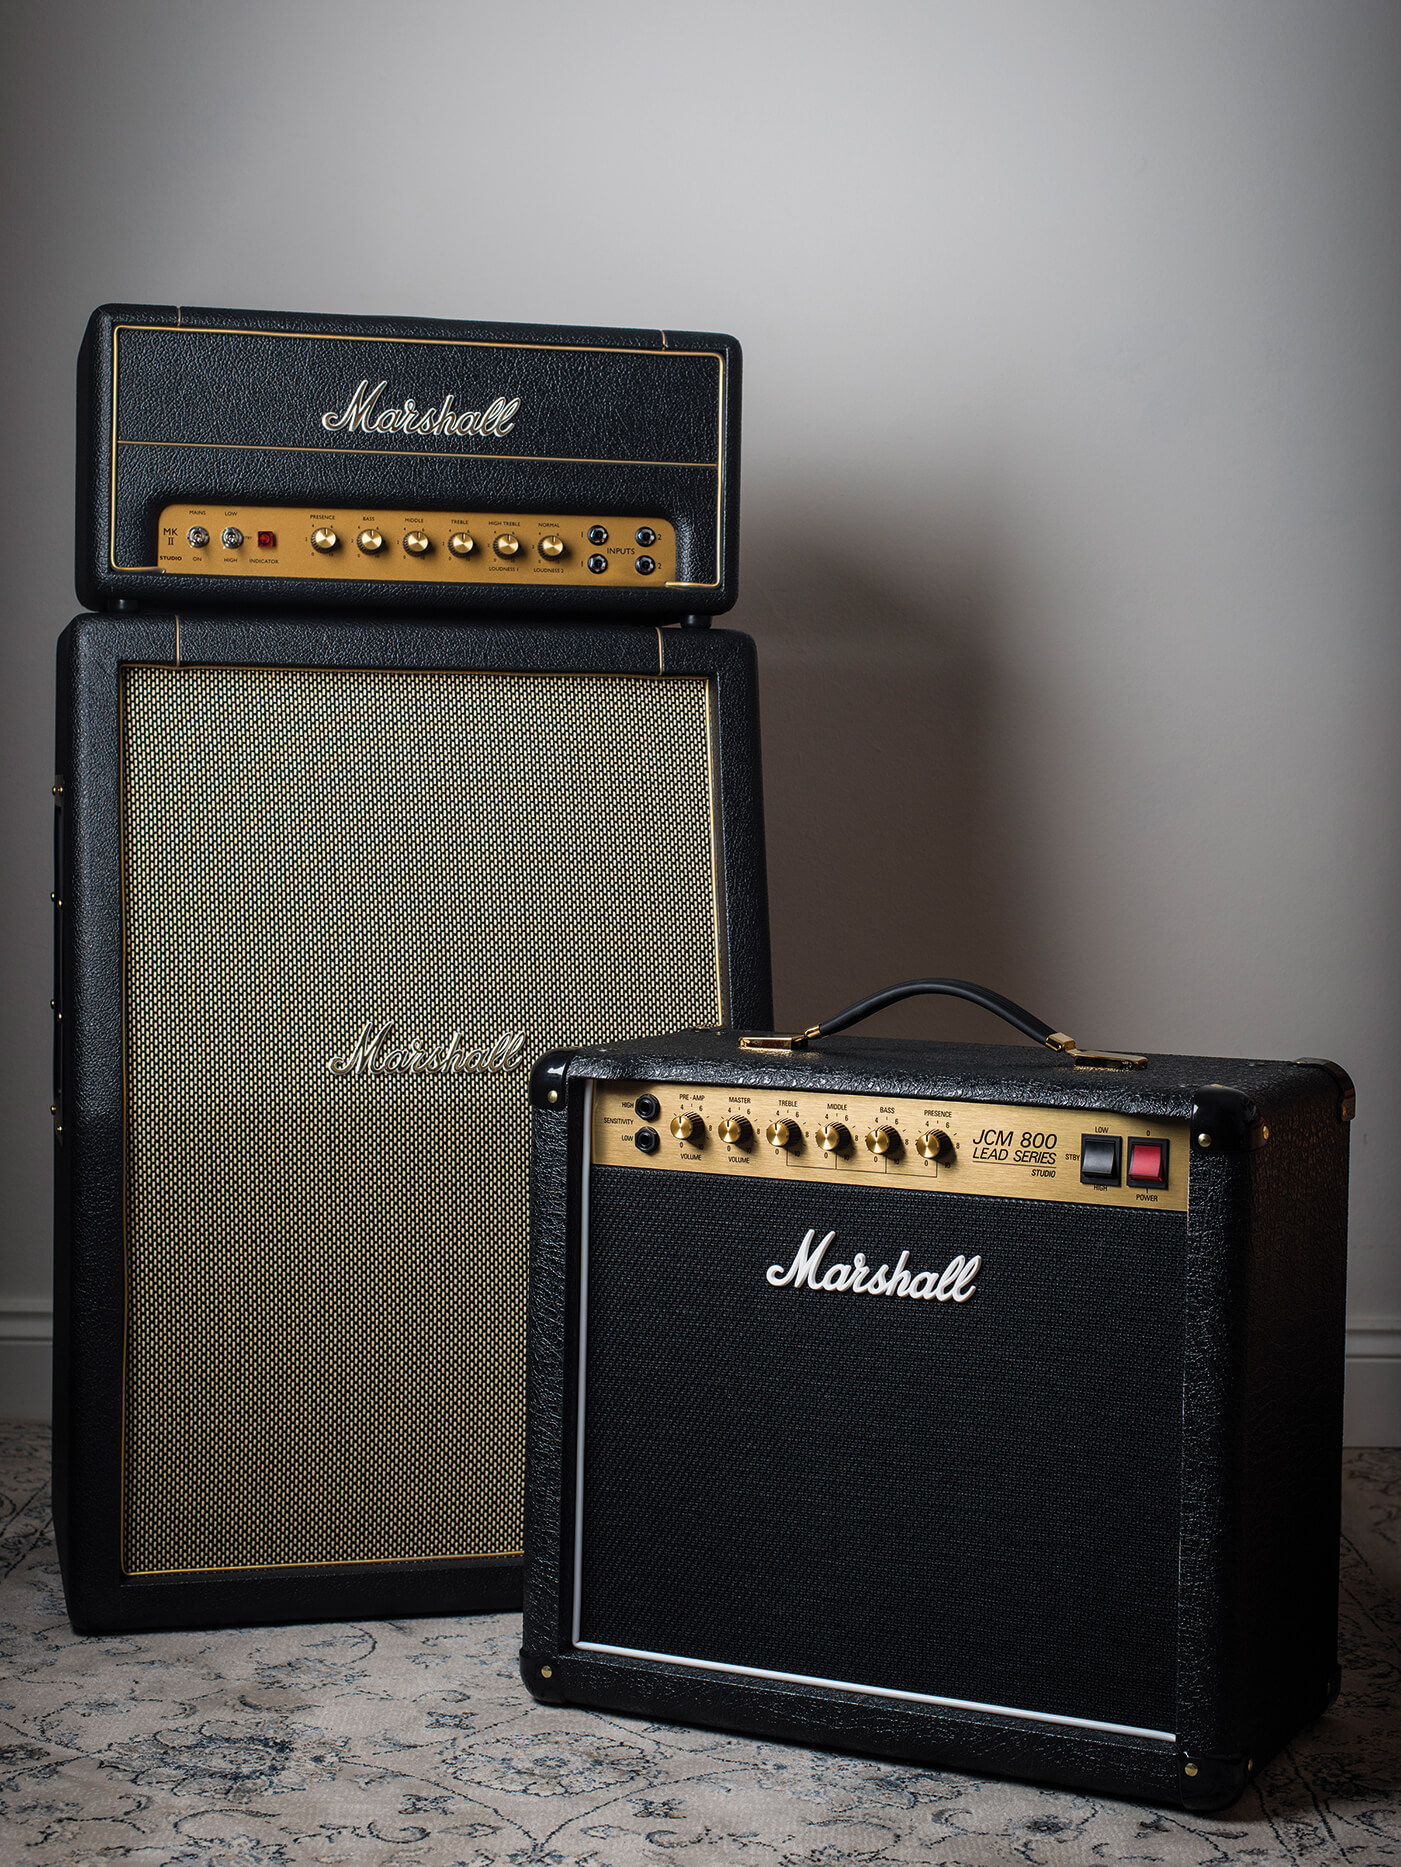 Marshall Studio Classic two amps family shot